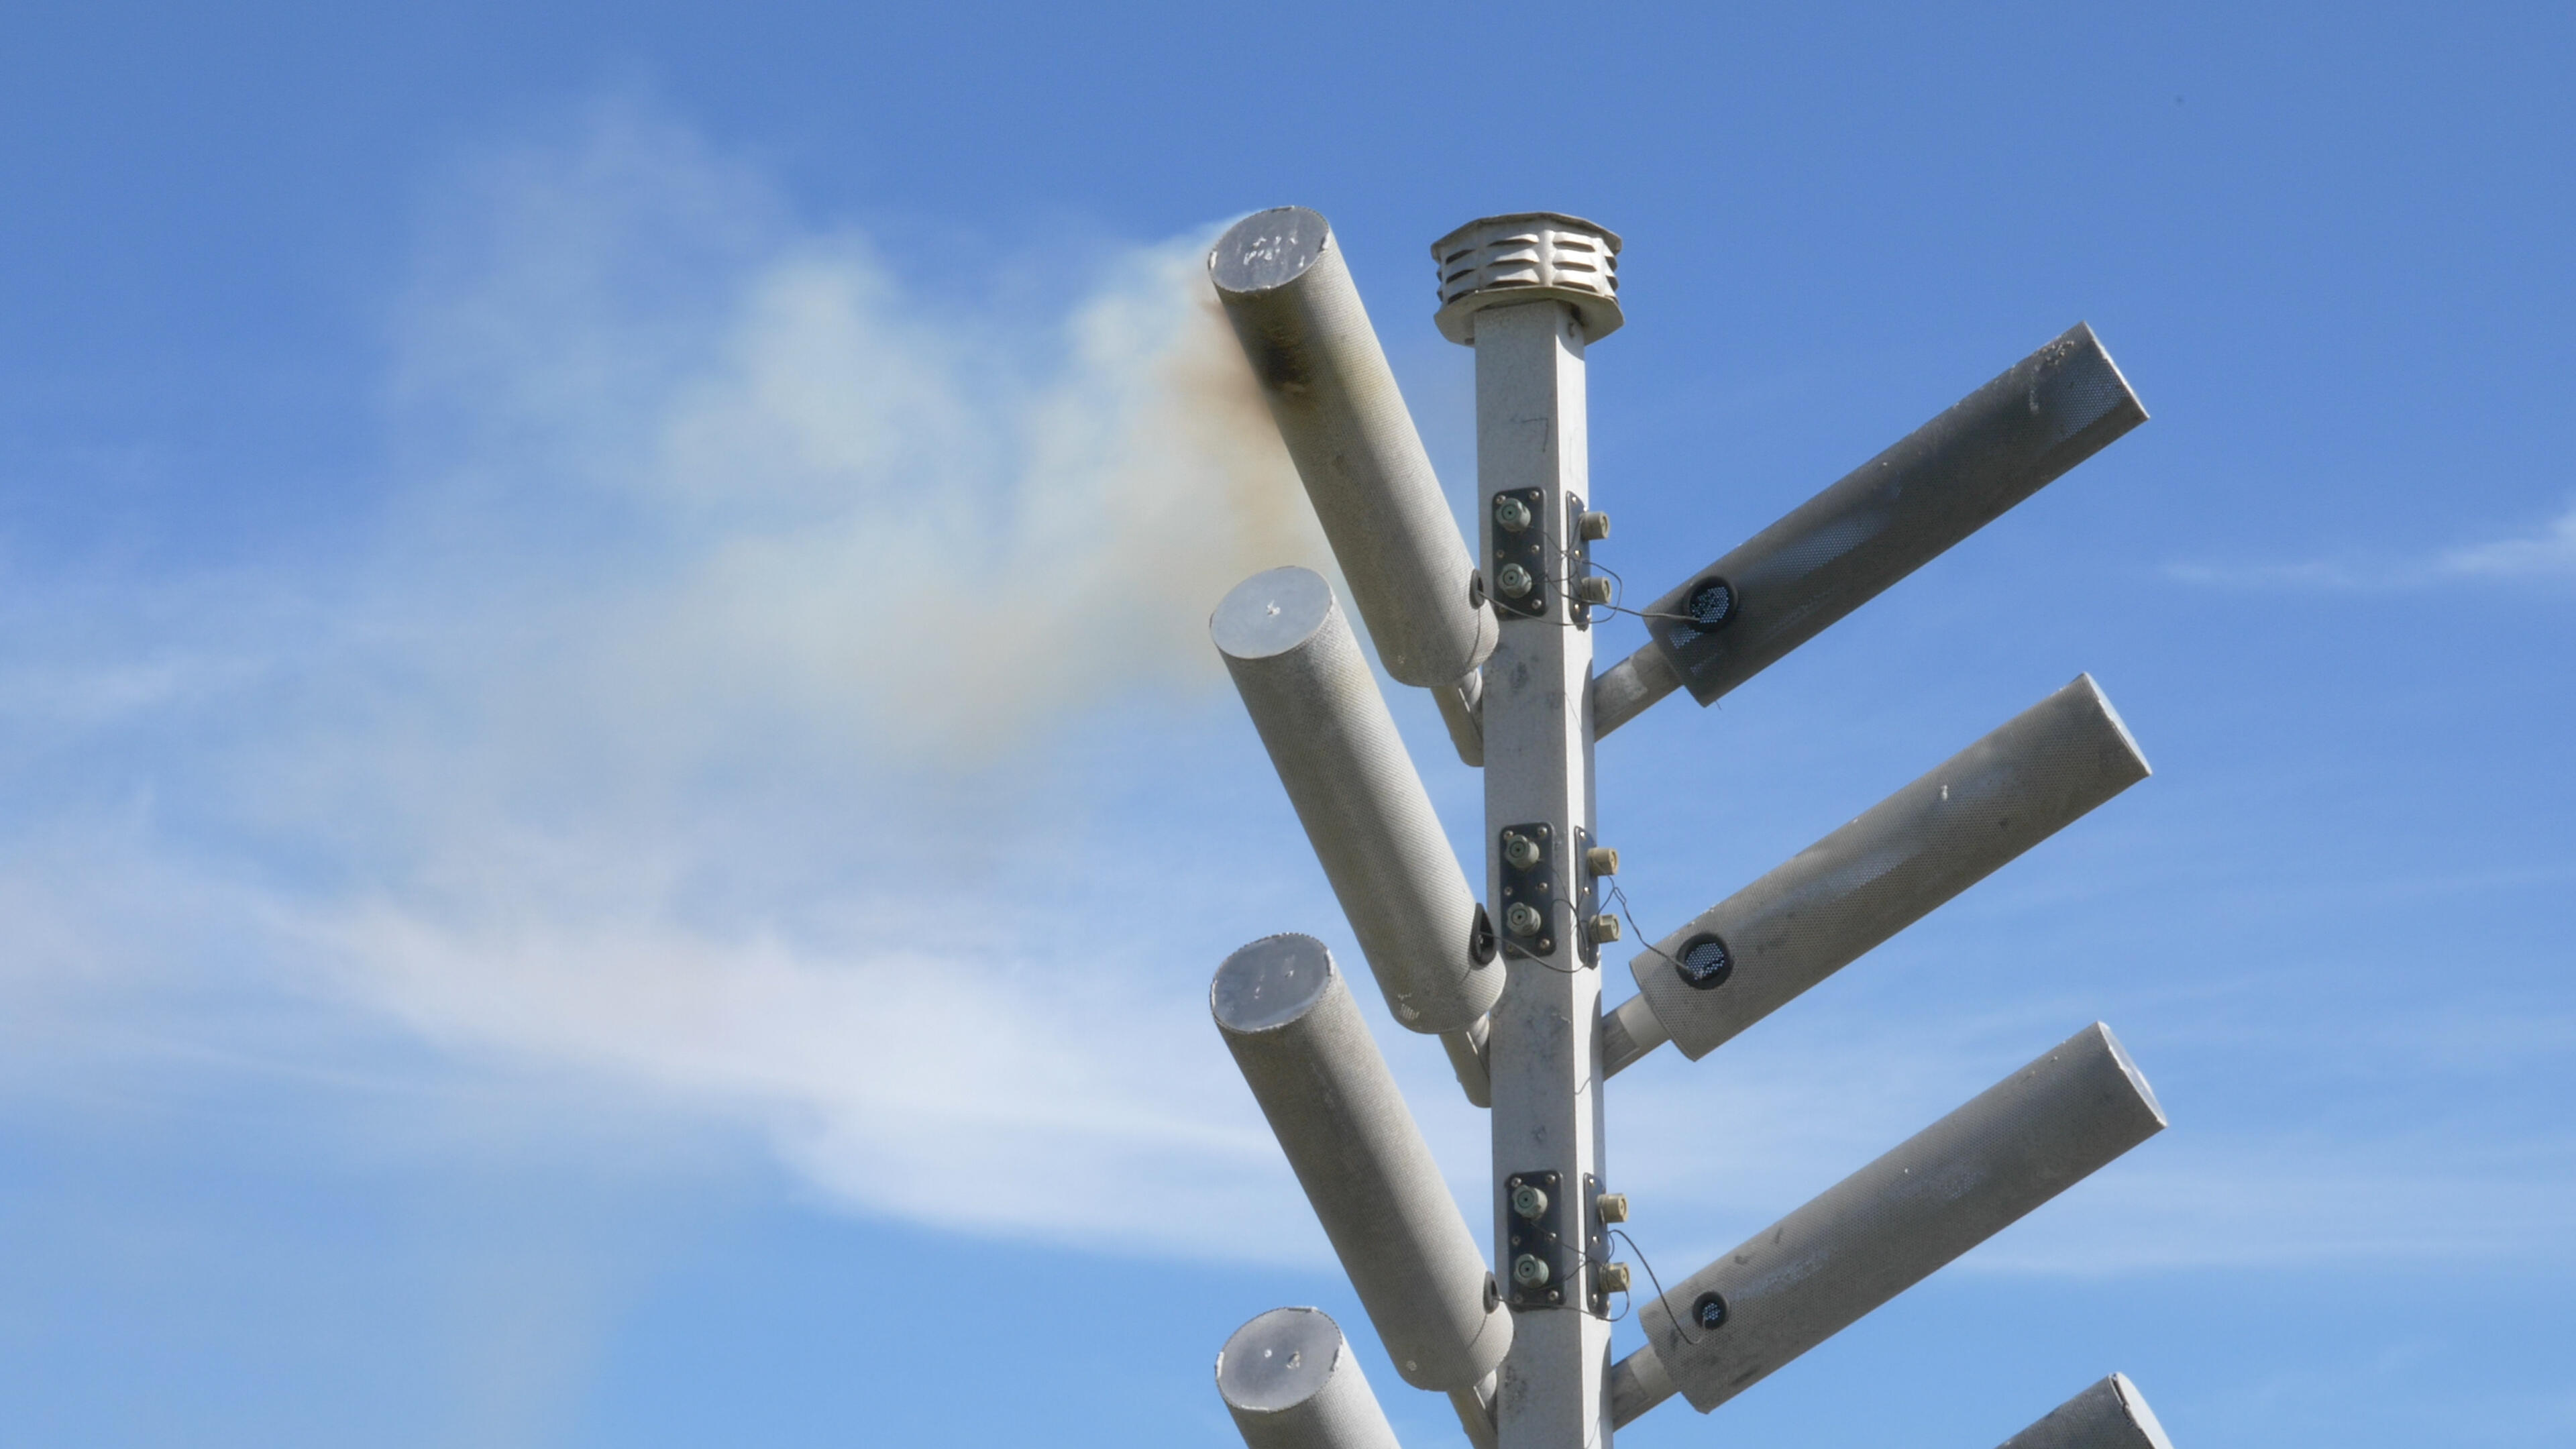 Video: Cloud-seeding site walk-through and demonstration